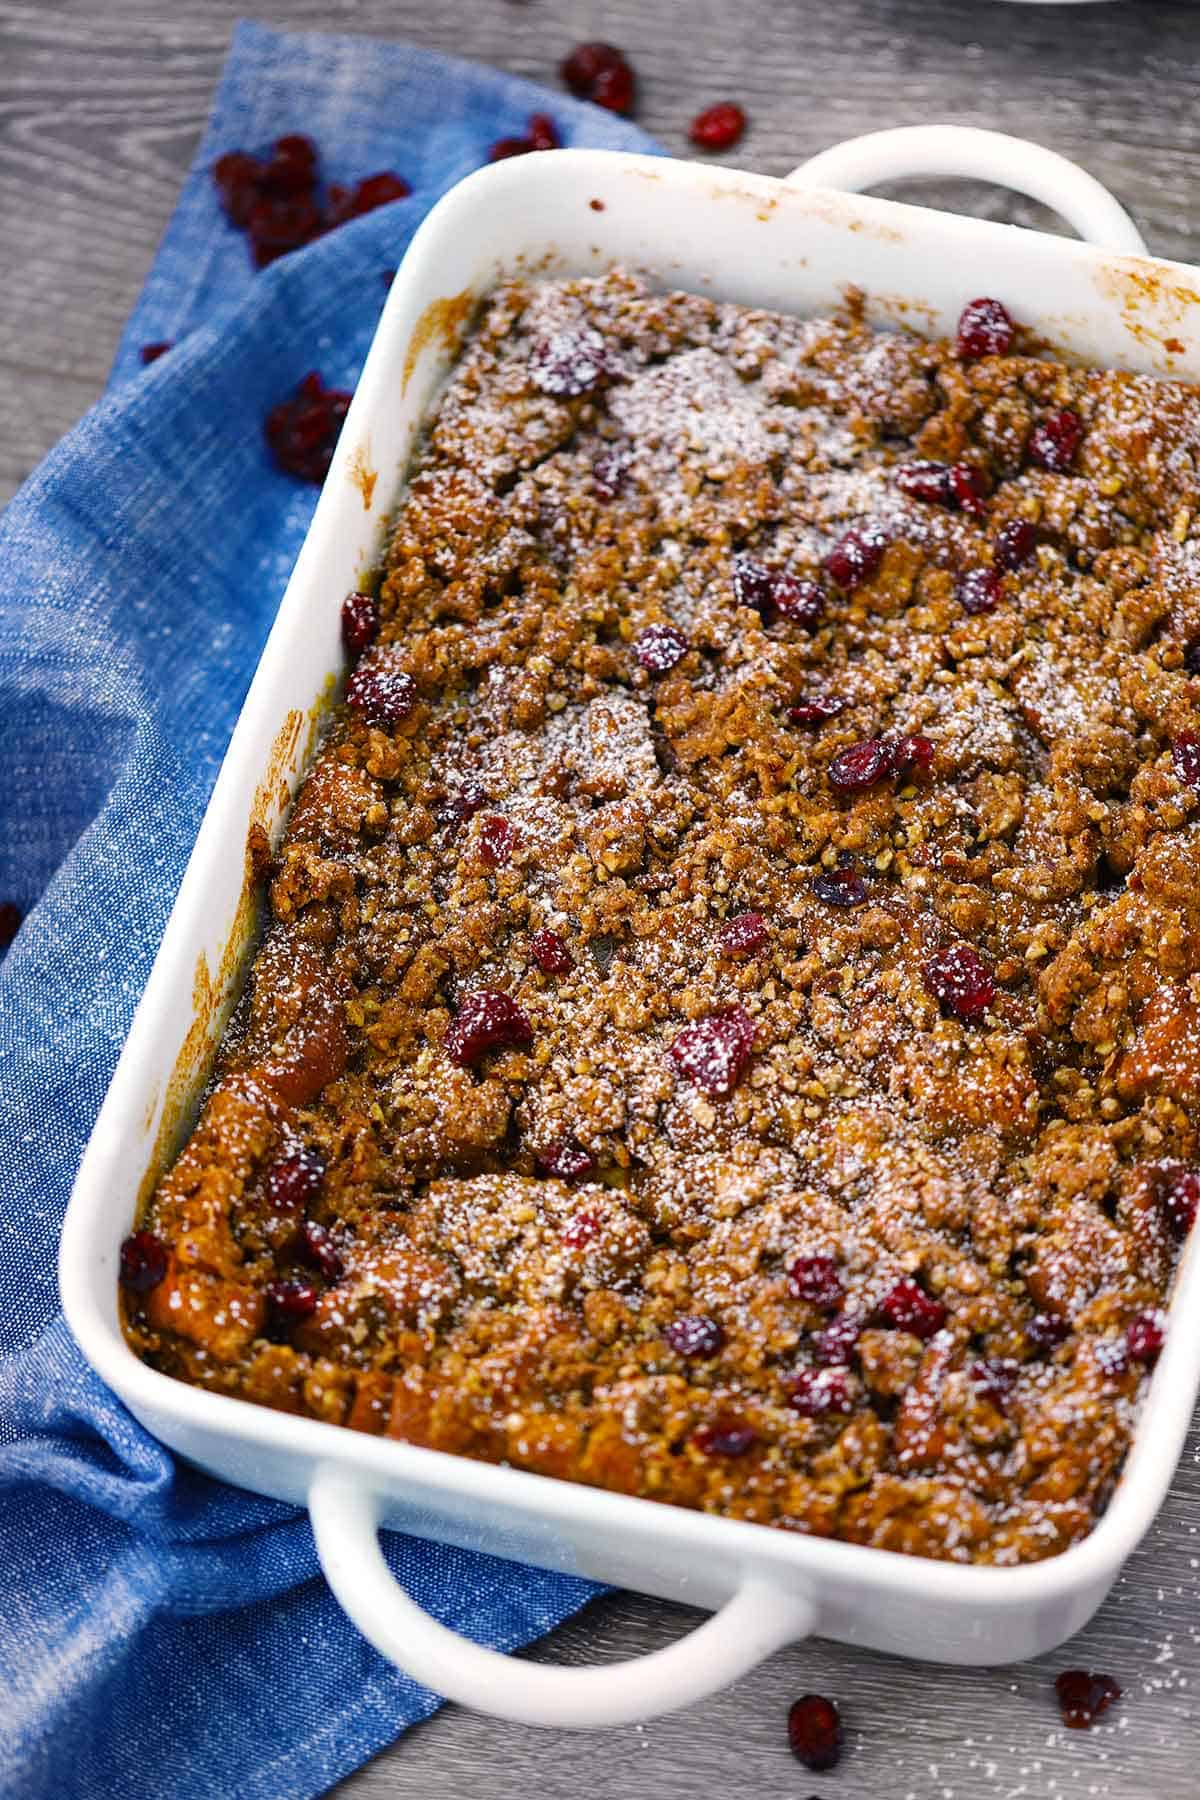 Baked pumpkin french toast casserole in a baking dish.